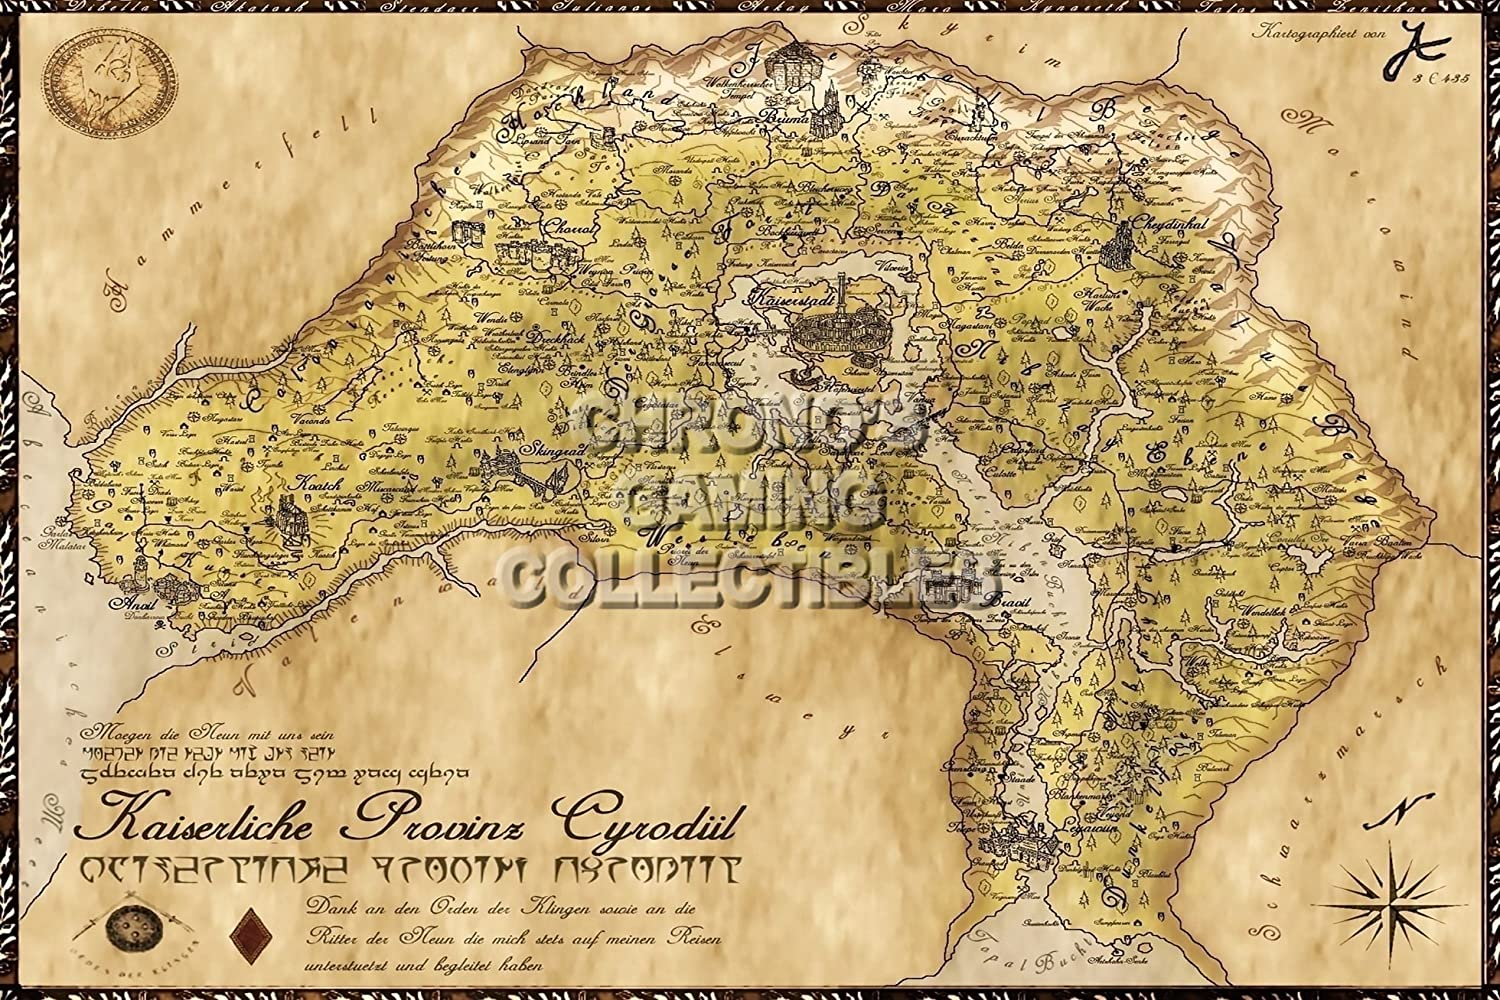 Amazon.com: CGC Huge Poster - Elder Scrolls IV Oblivion Map ... on rage map size, gta map size, fallout new vegas map size, morrowind map size, terraria map size, l.a. noire map size, simcity map size, guild wars 2 map size, just cause 2 map size, tomb raider map size, wow map size, skyrim map size, minecraft map size, mmo map size, game map size, assassin's creed map size, borderlands map size, oblivion map size, red dead redemption map size, daggerfall map size,